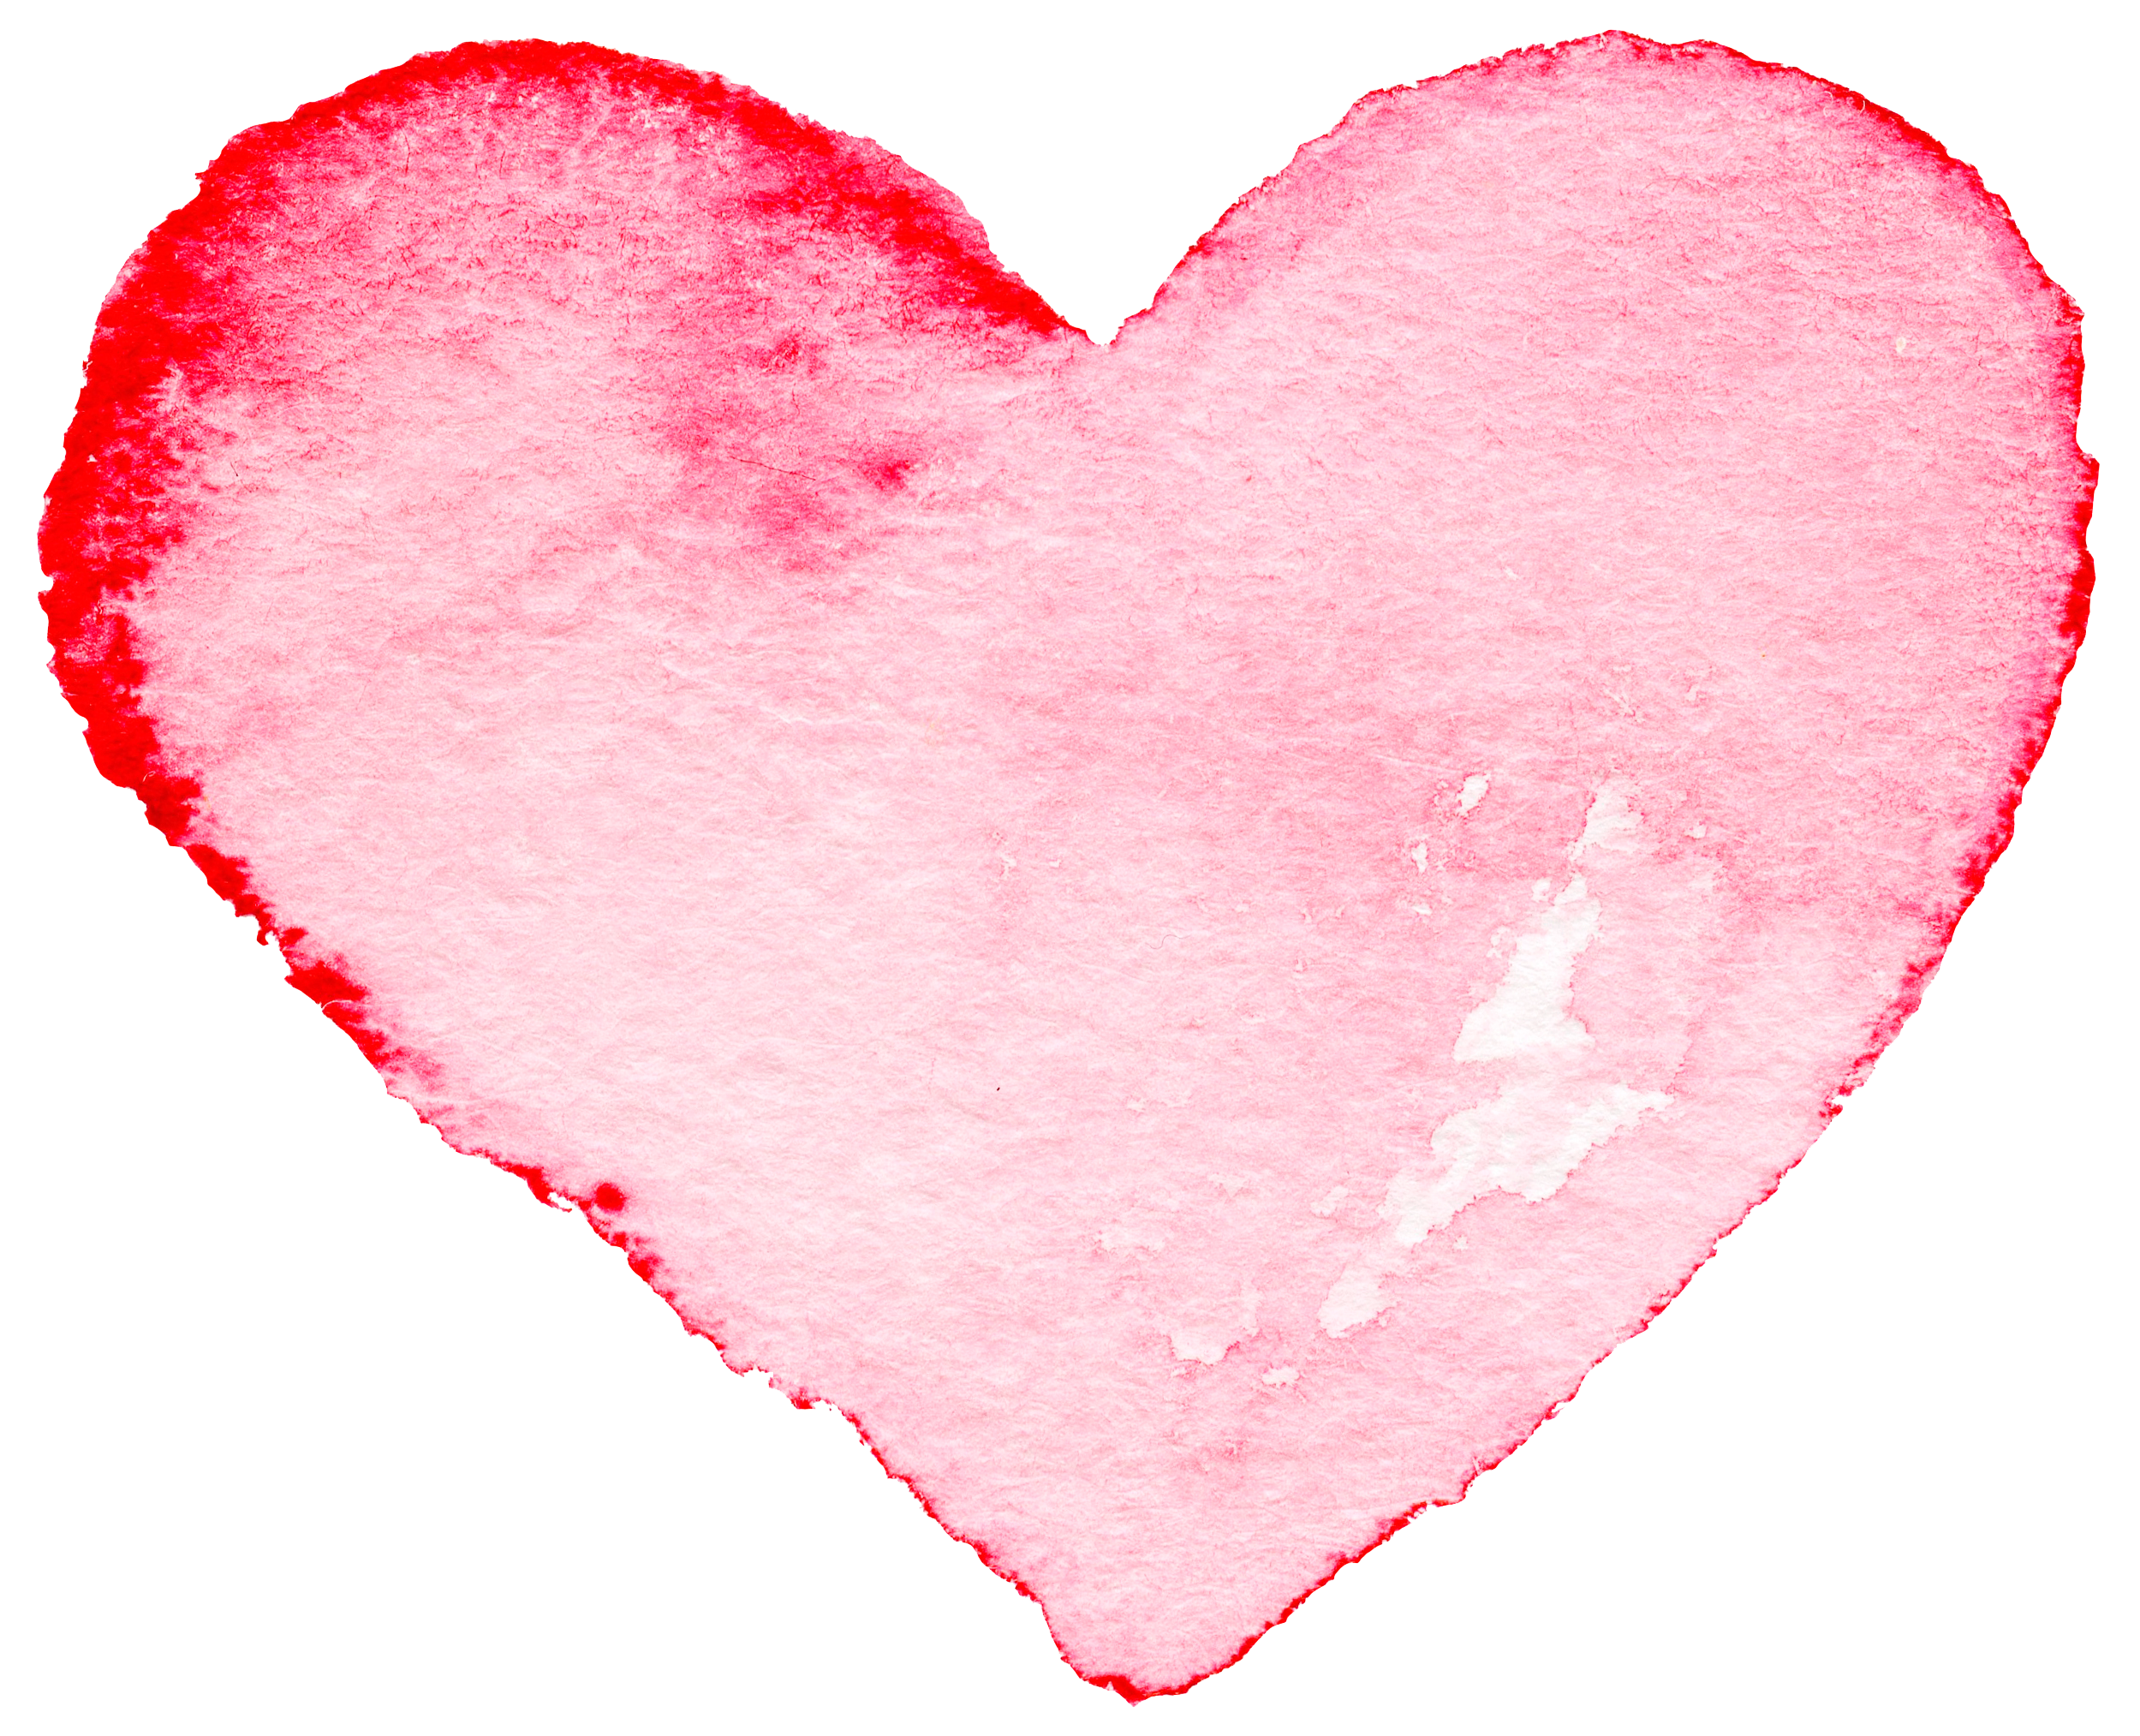 Watercolor heart png. Painting transprent free download